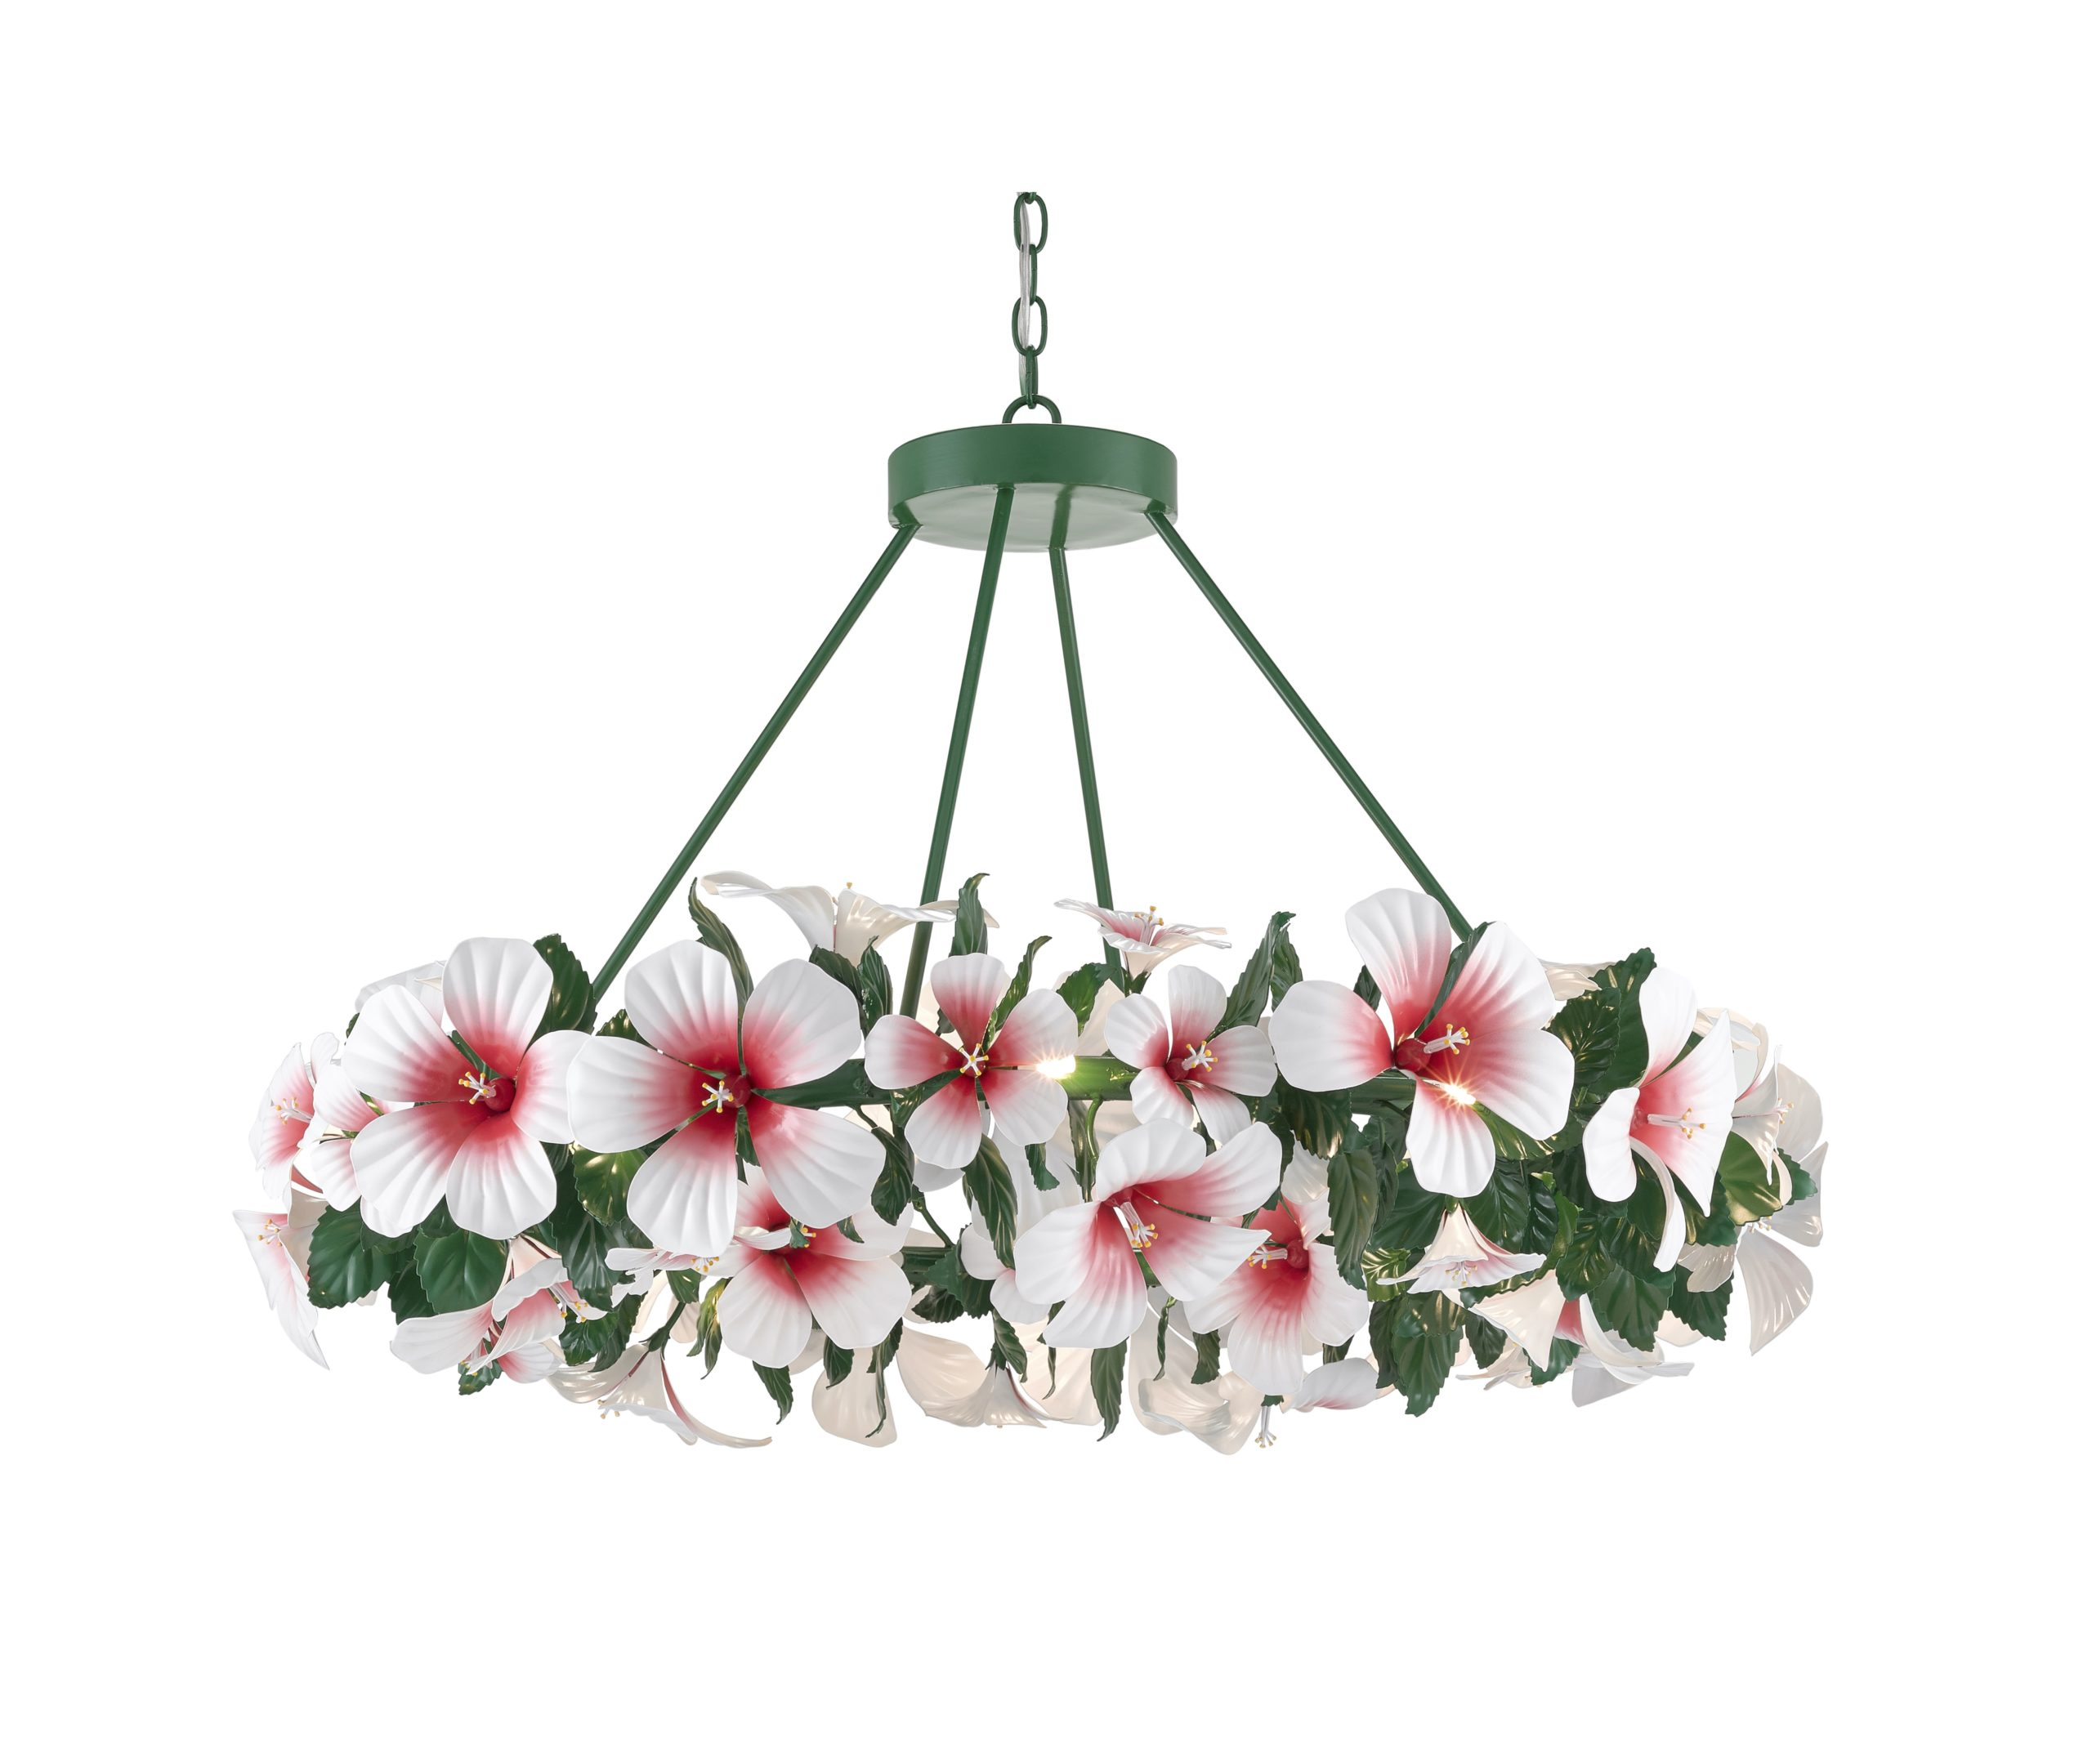 NYDC_WNWN_currey_and_co_products_hibiscus_chandelier_9000-0659